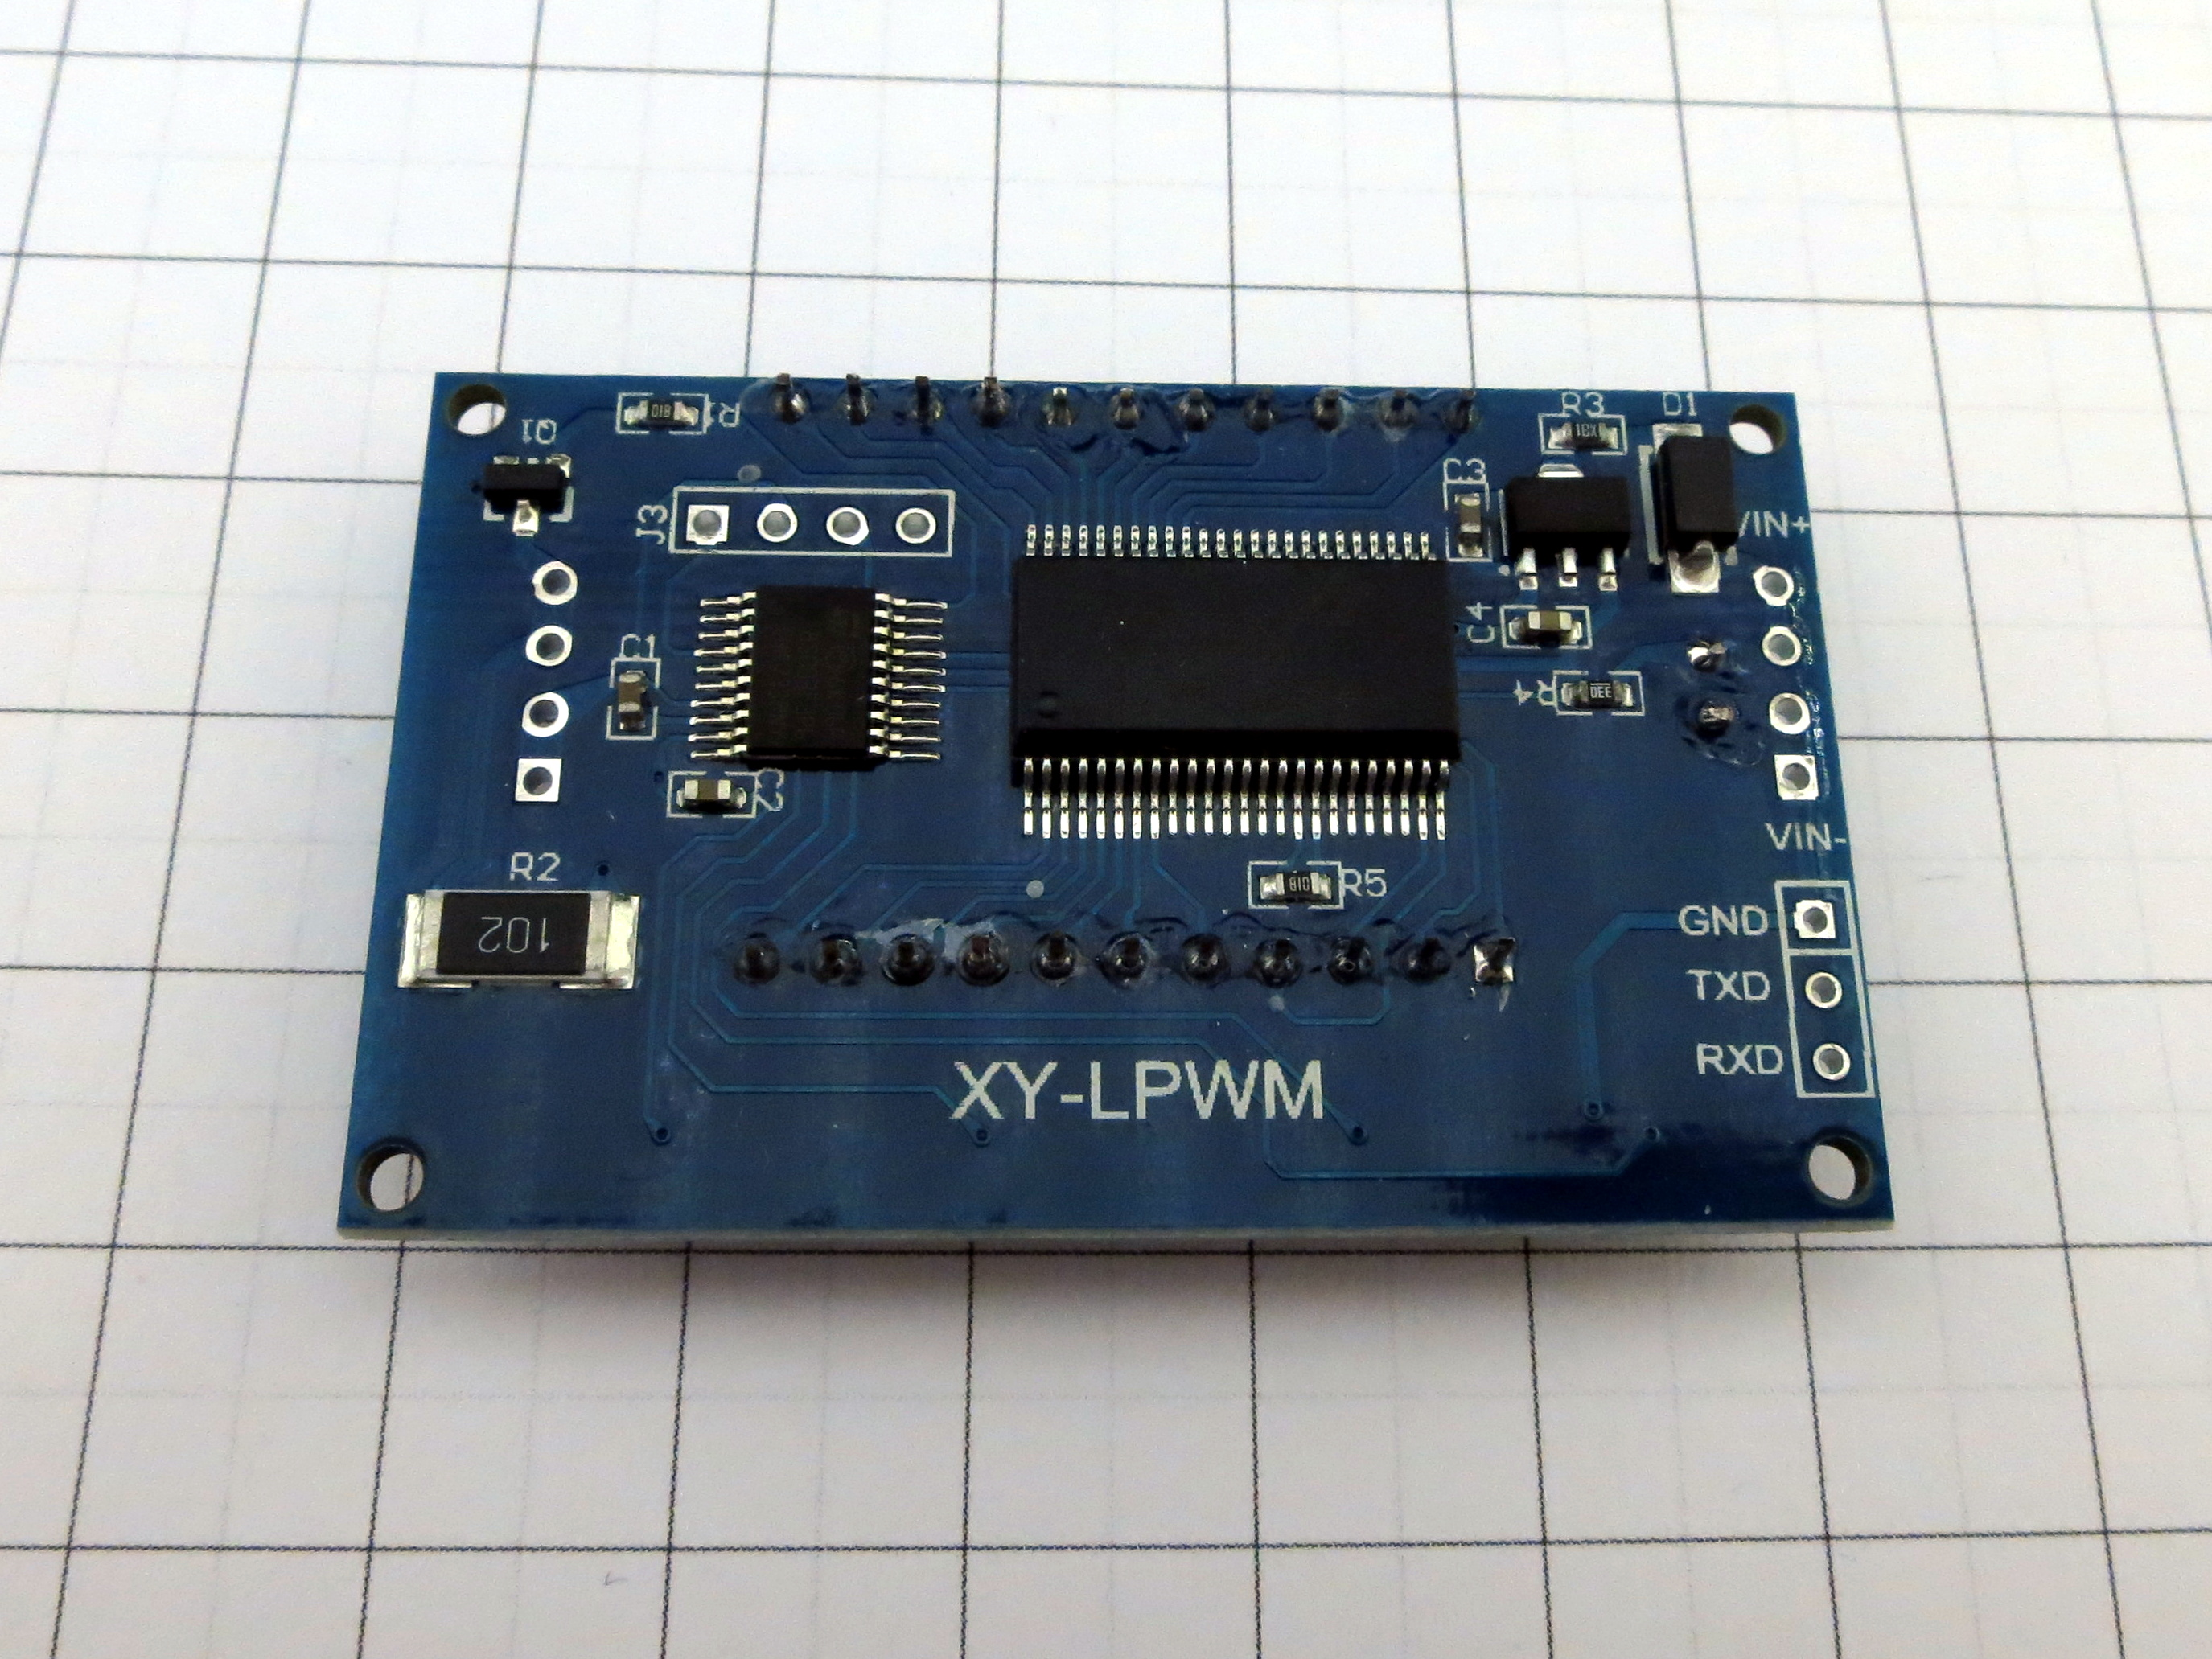 Pwm Pulse Frequency Duty Cycle Adjustable Square Wave Signal Generator Circuit With Variable Width Bare Pcb 53 Ish Centimeters Somewhat Prepared For Panel Mounting So I Could Imagine Theres Also A Version Nice Case Available Let Me Know If